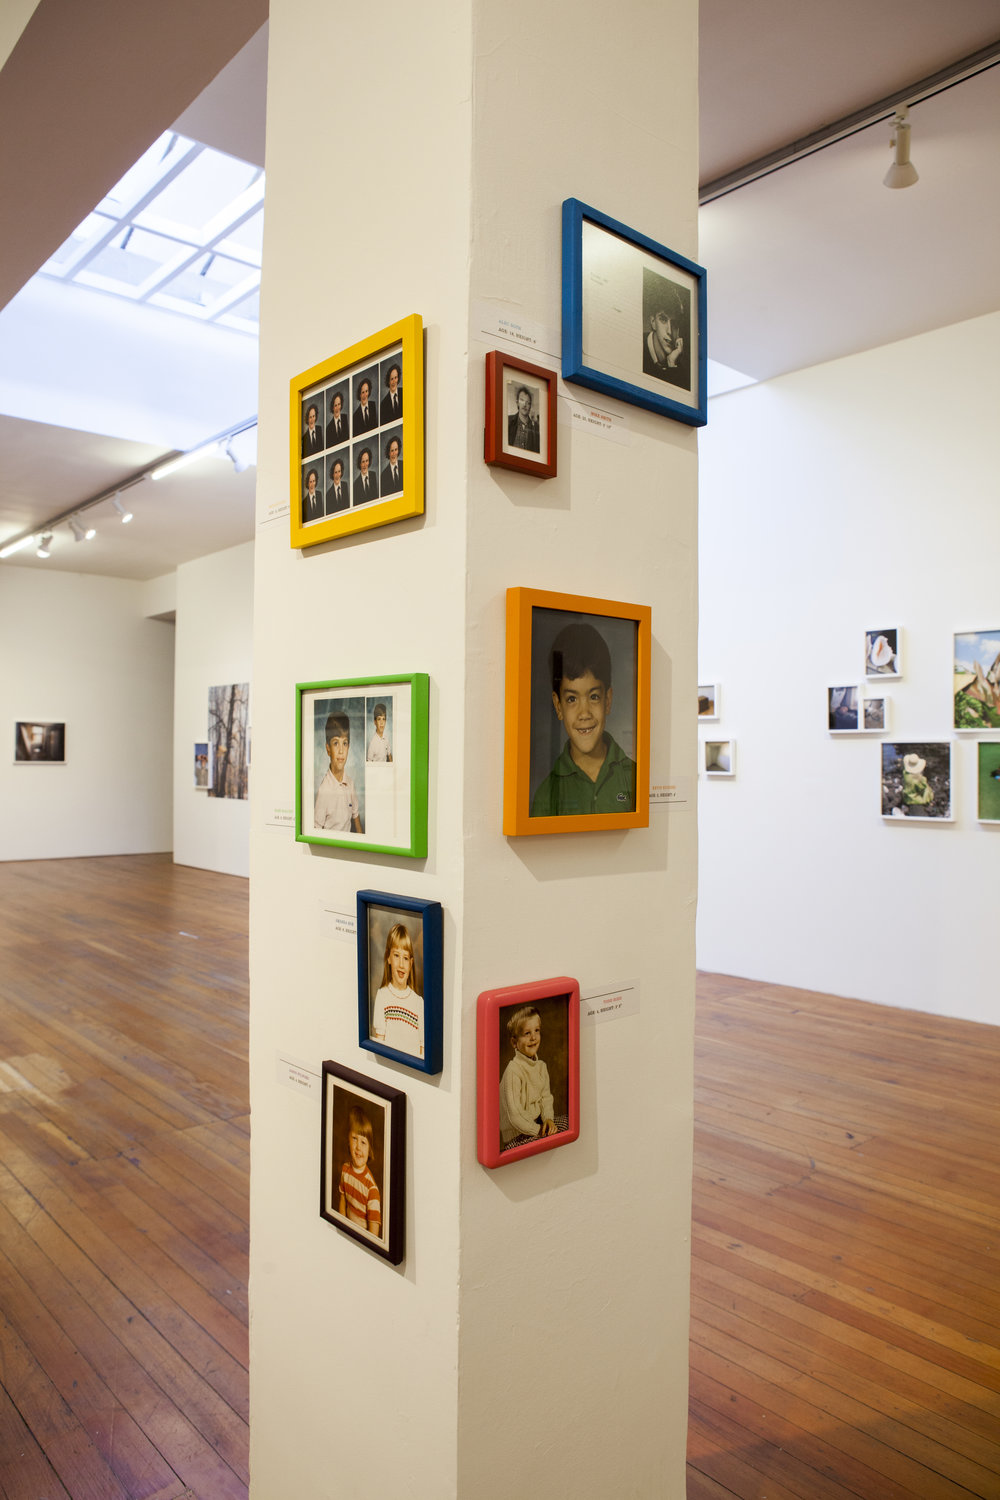 Installation view of artists school portraits.